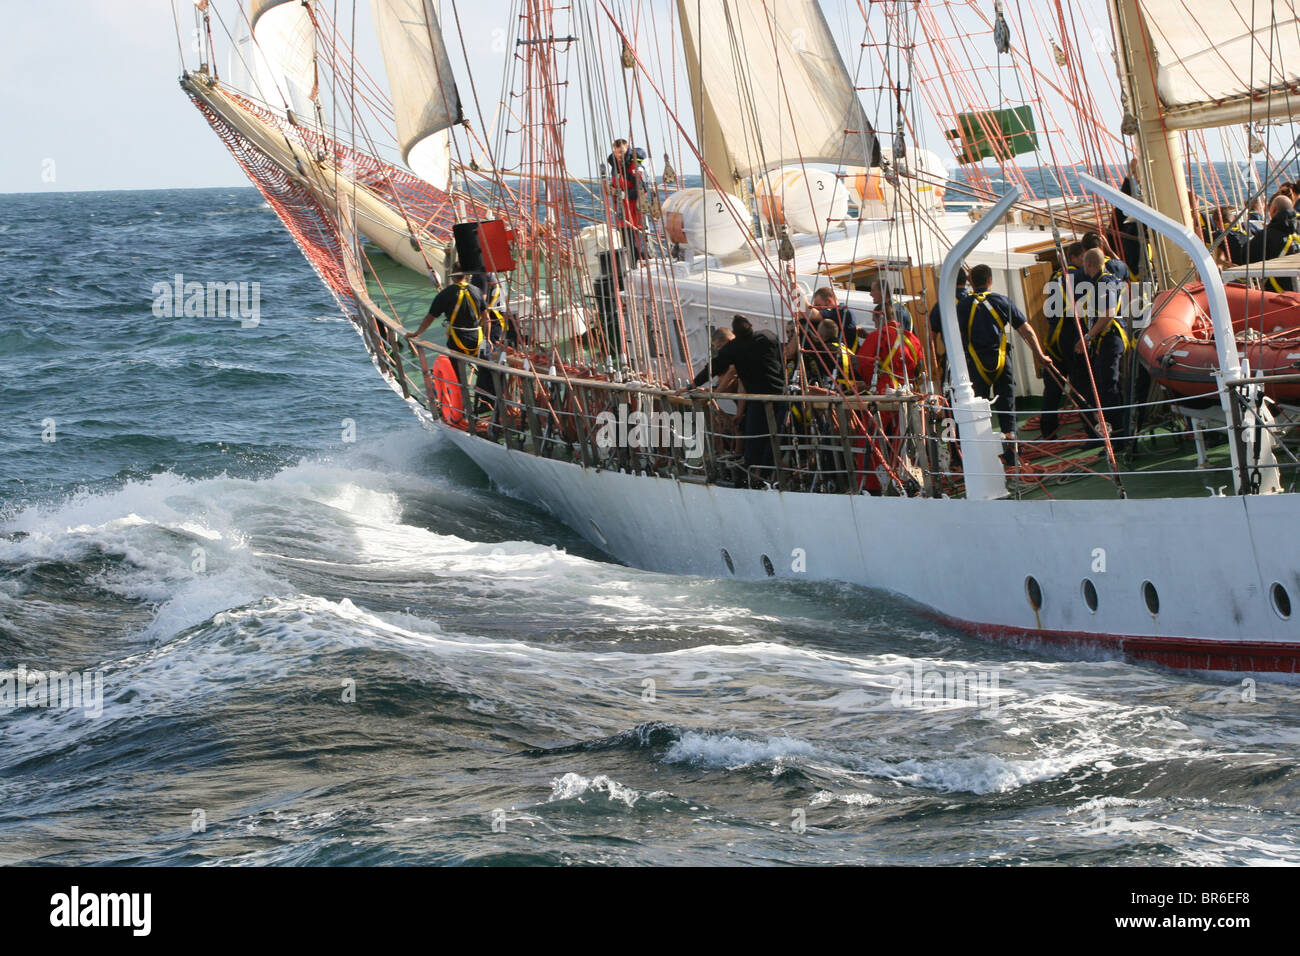 Iskra, The Tall Ships Races 2010, Kristiansand - Stock Image